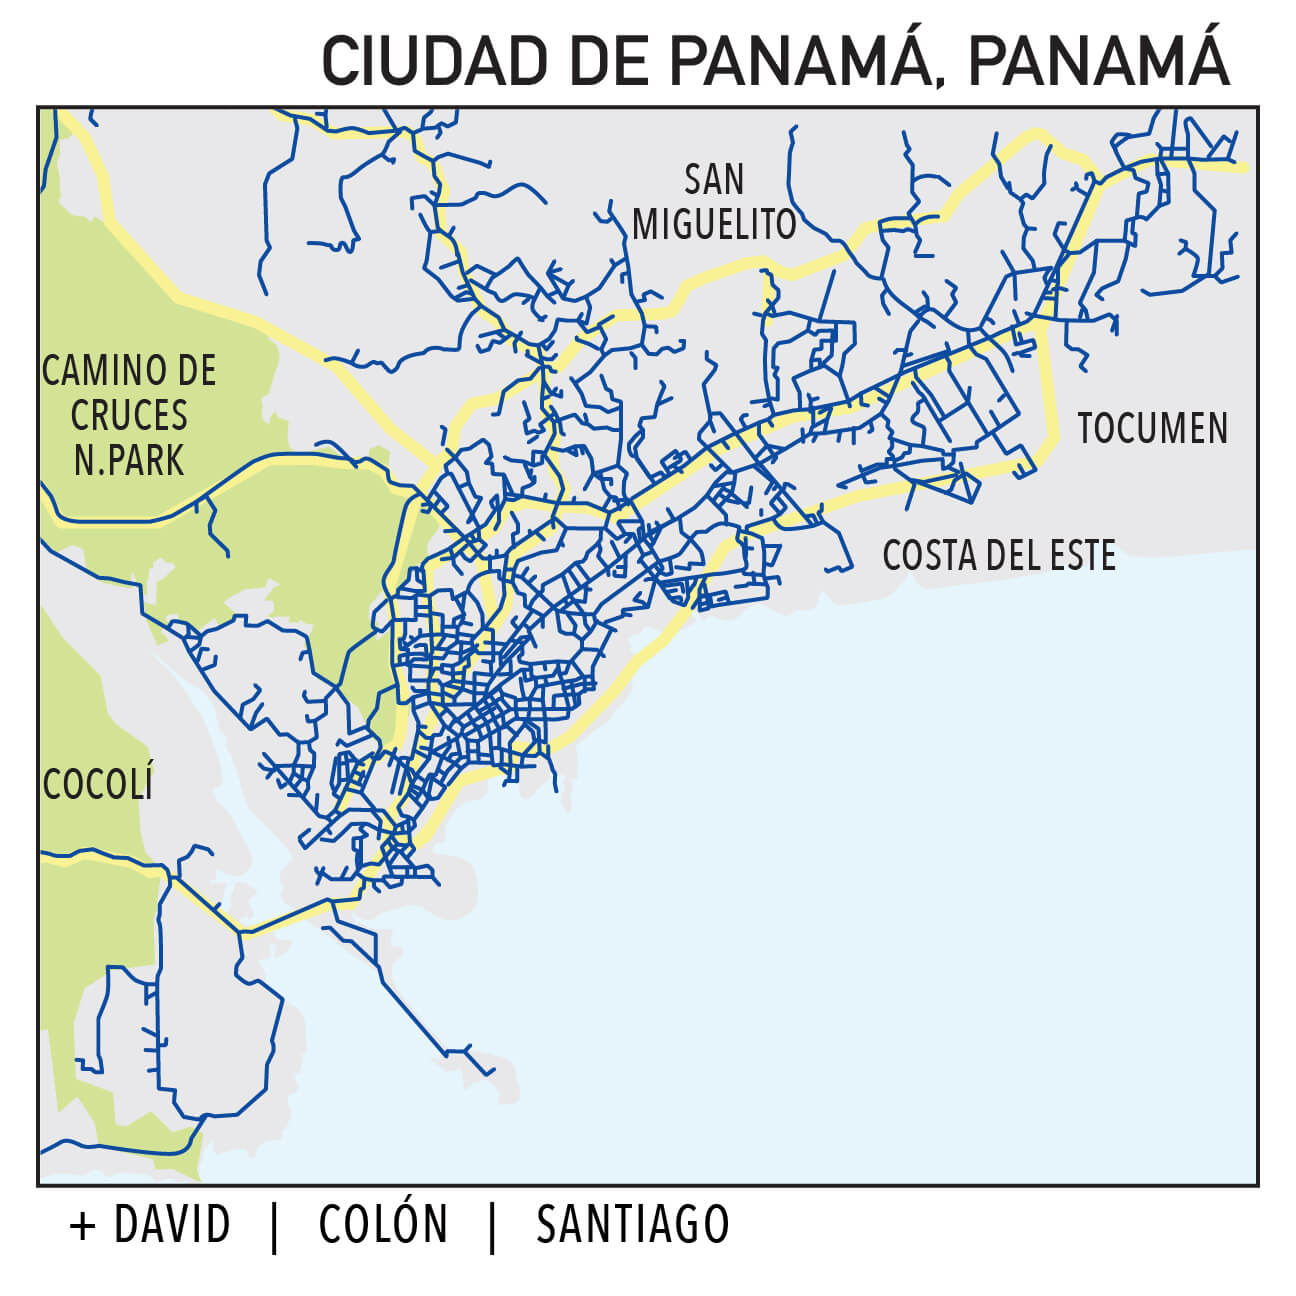 Capillarity Panamá map Ufinet